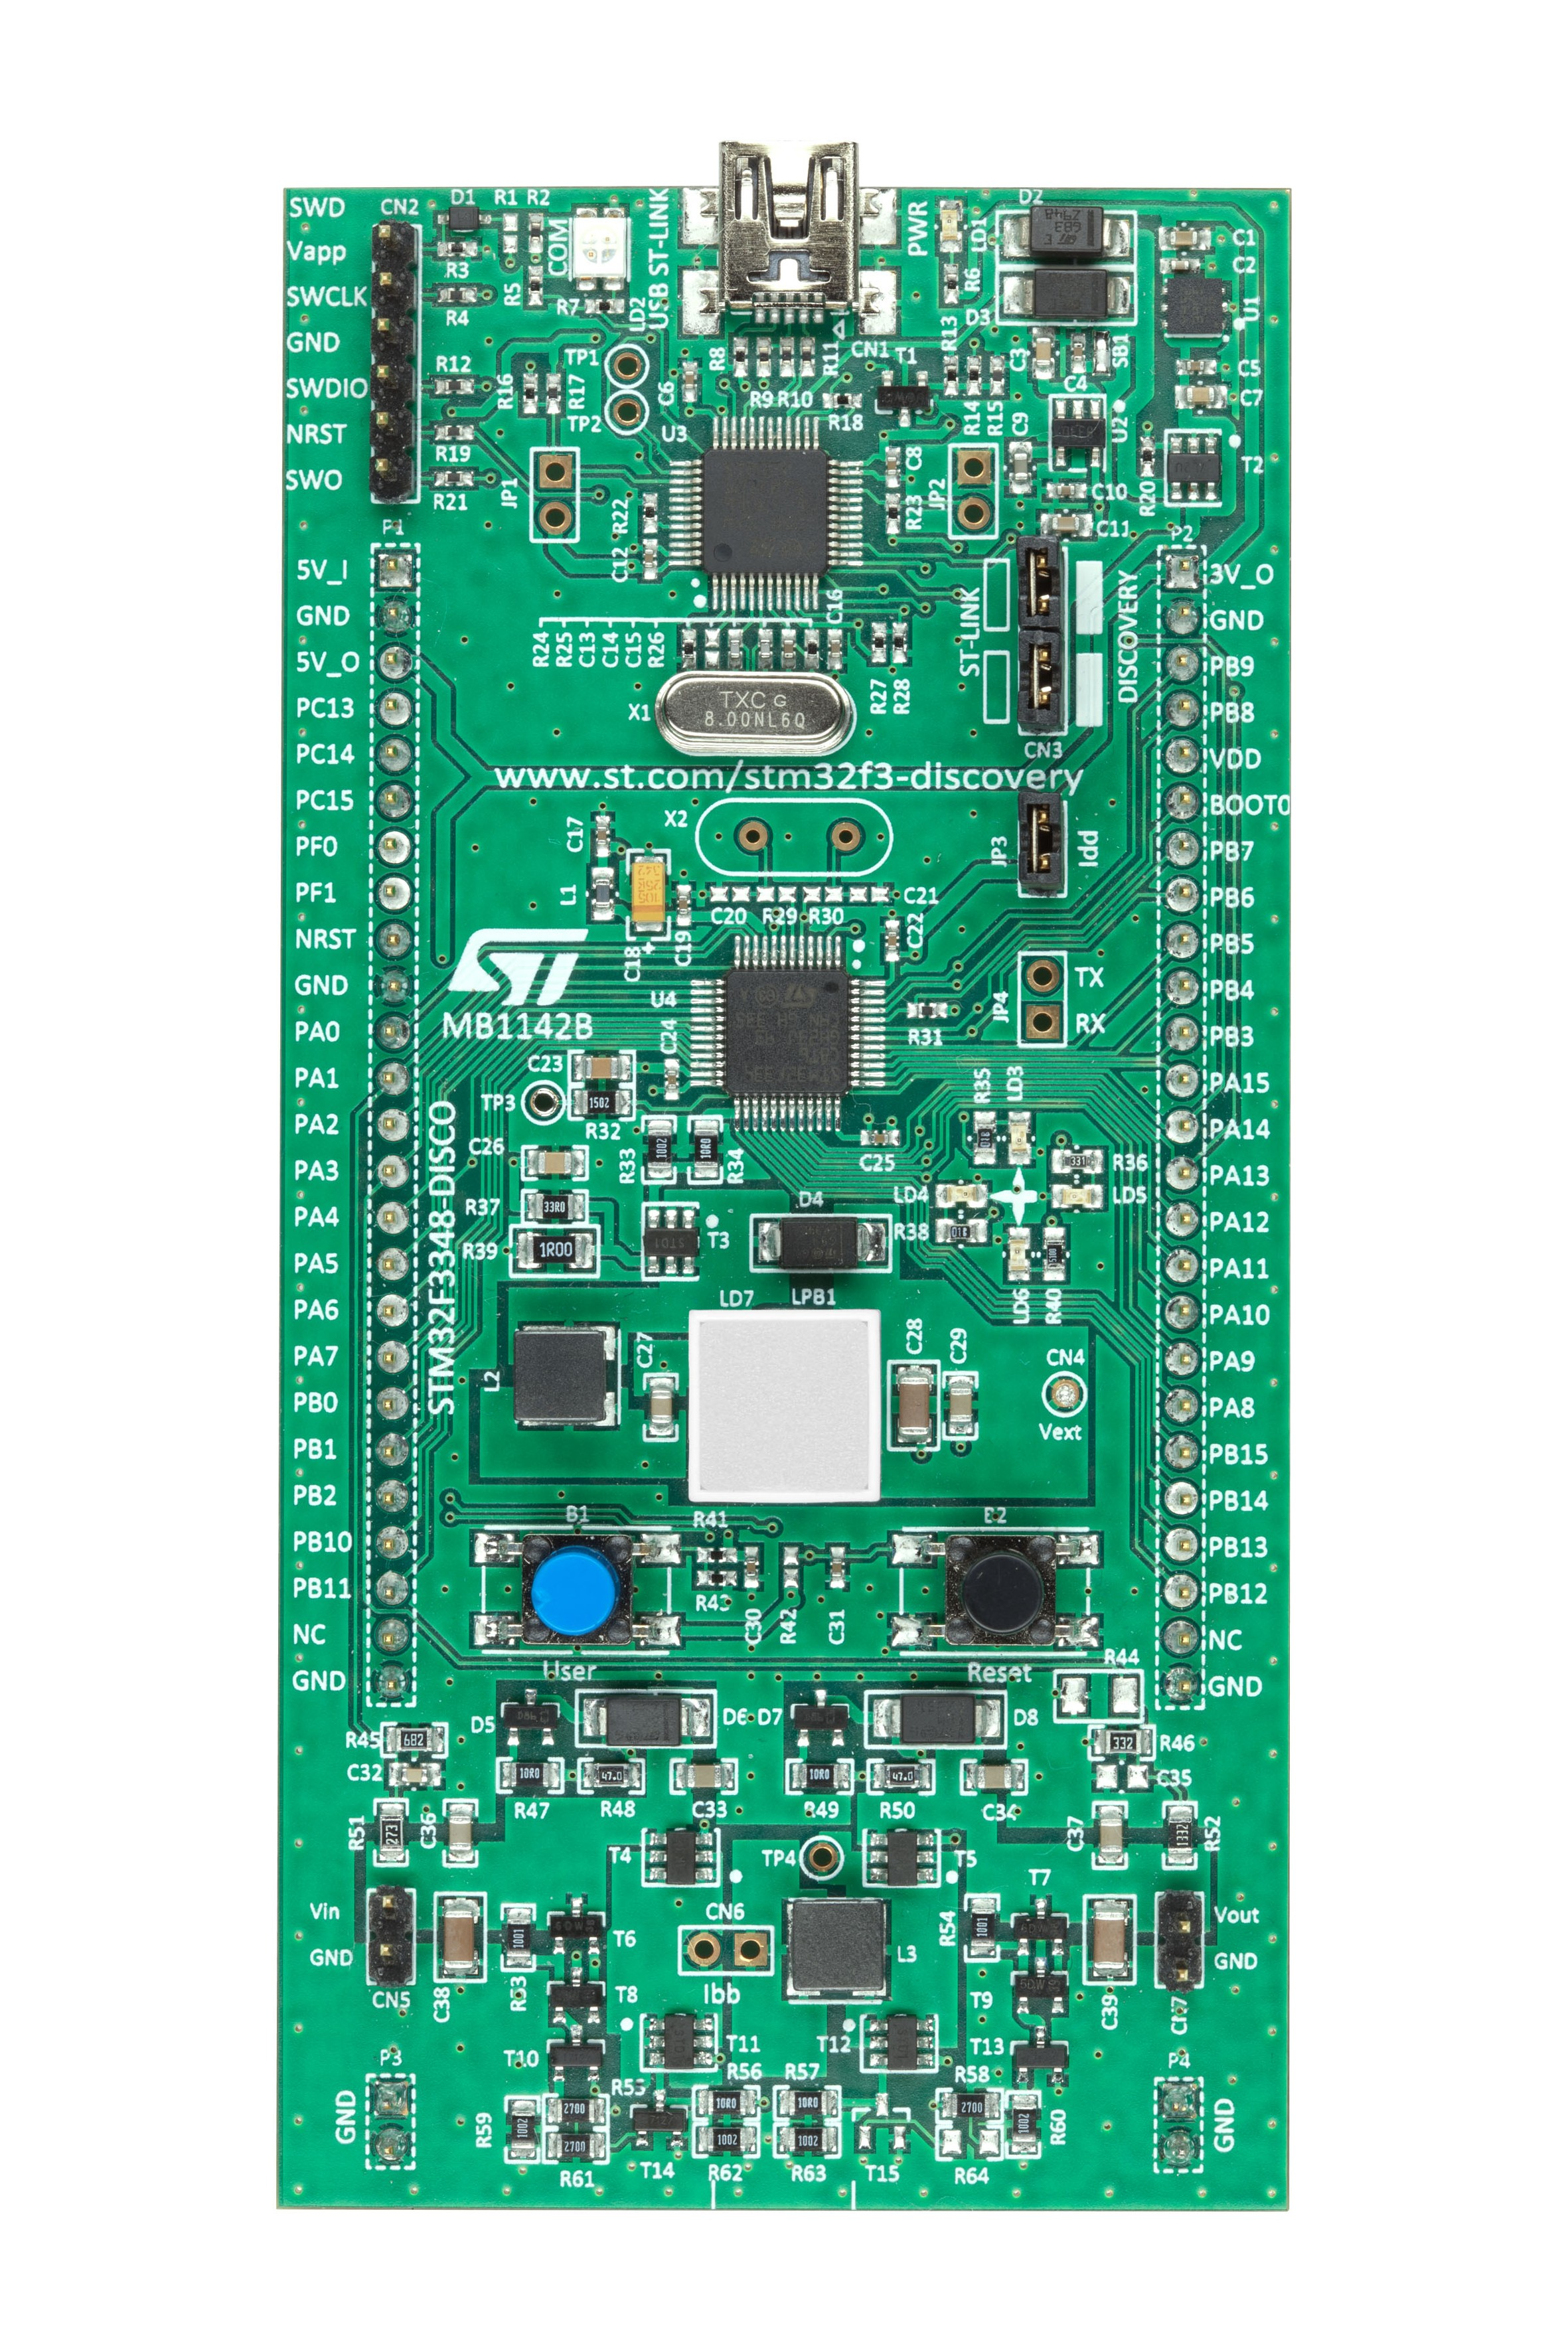 STM32F3348-DISCO board photo